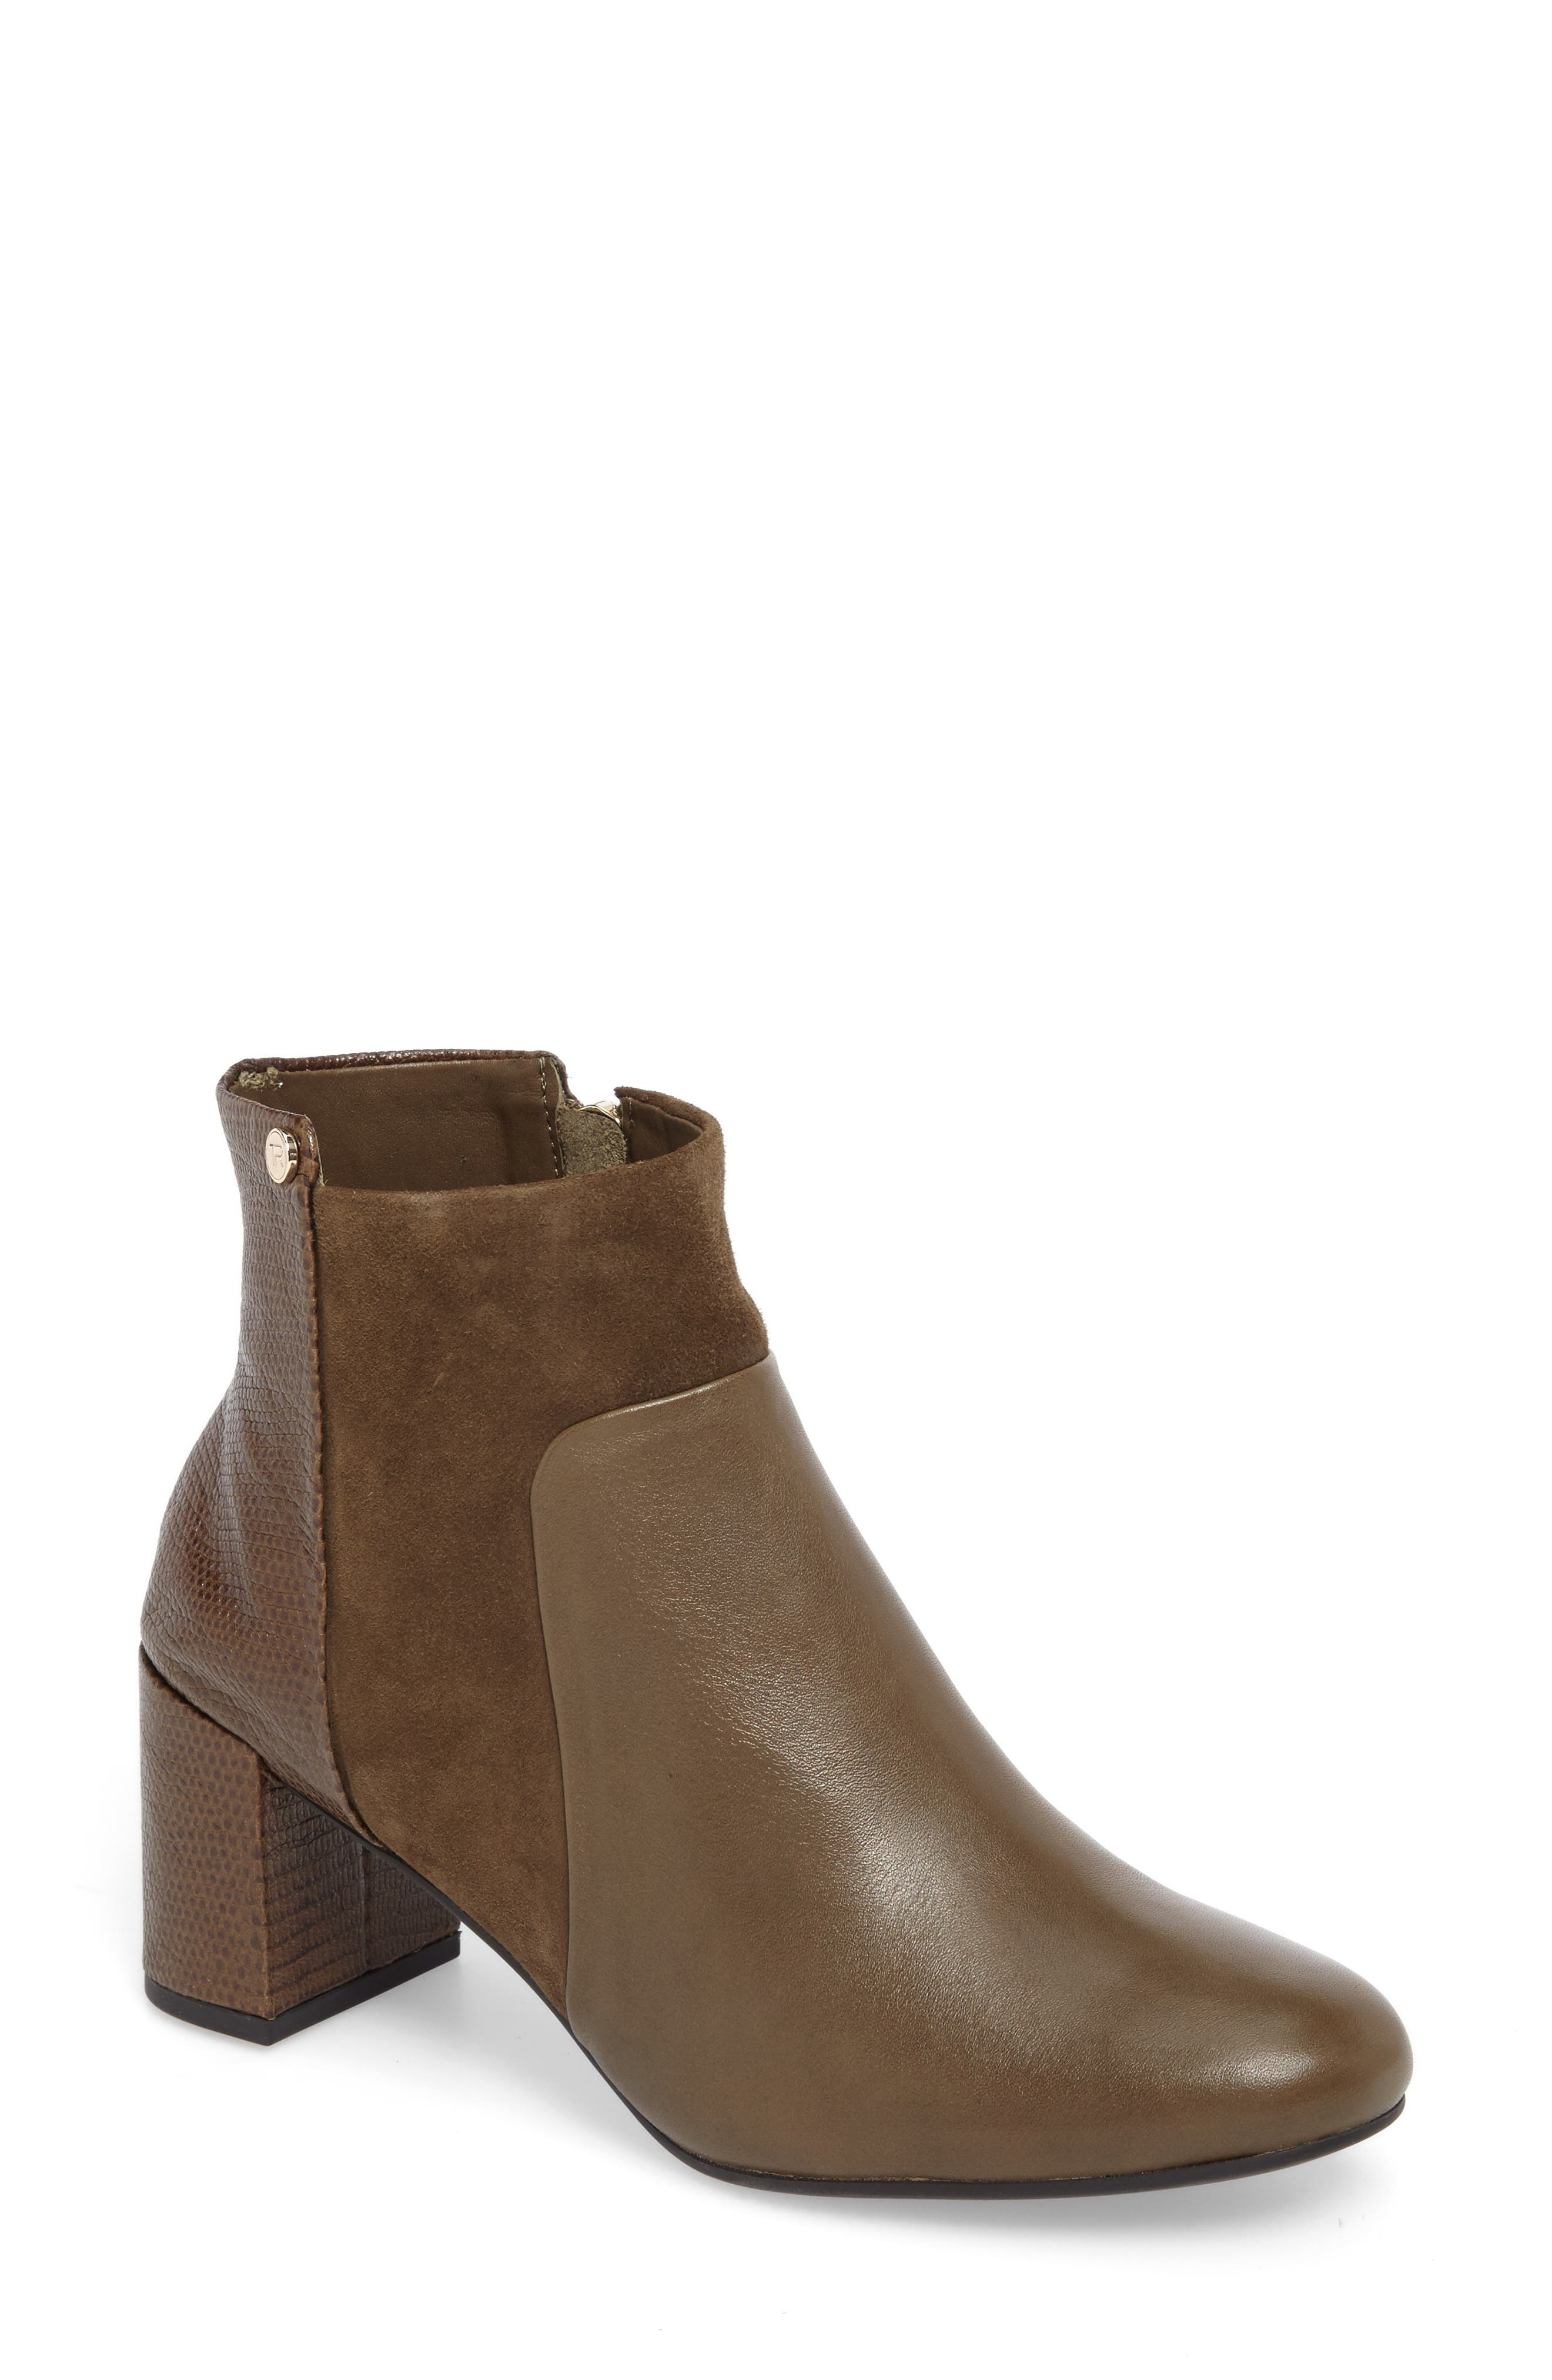 Camille Block Heel Bootie,                         Main,                         color, Olive Leather